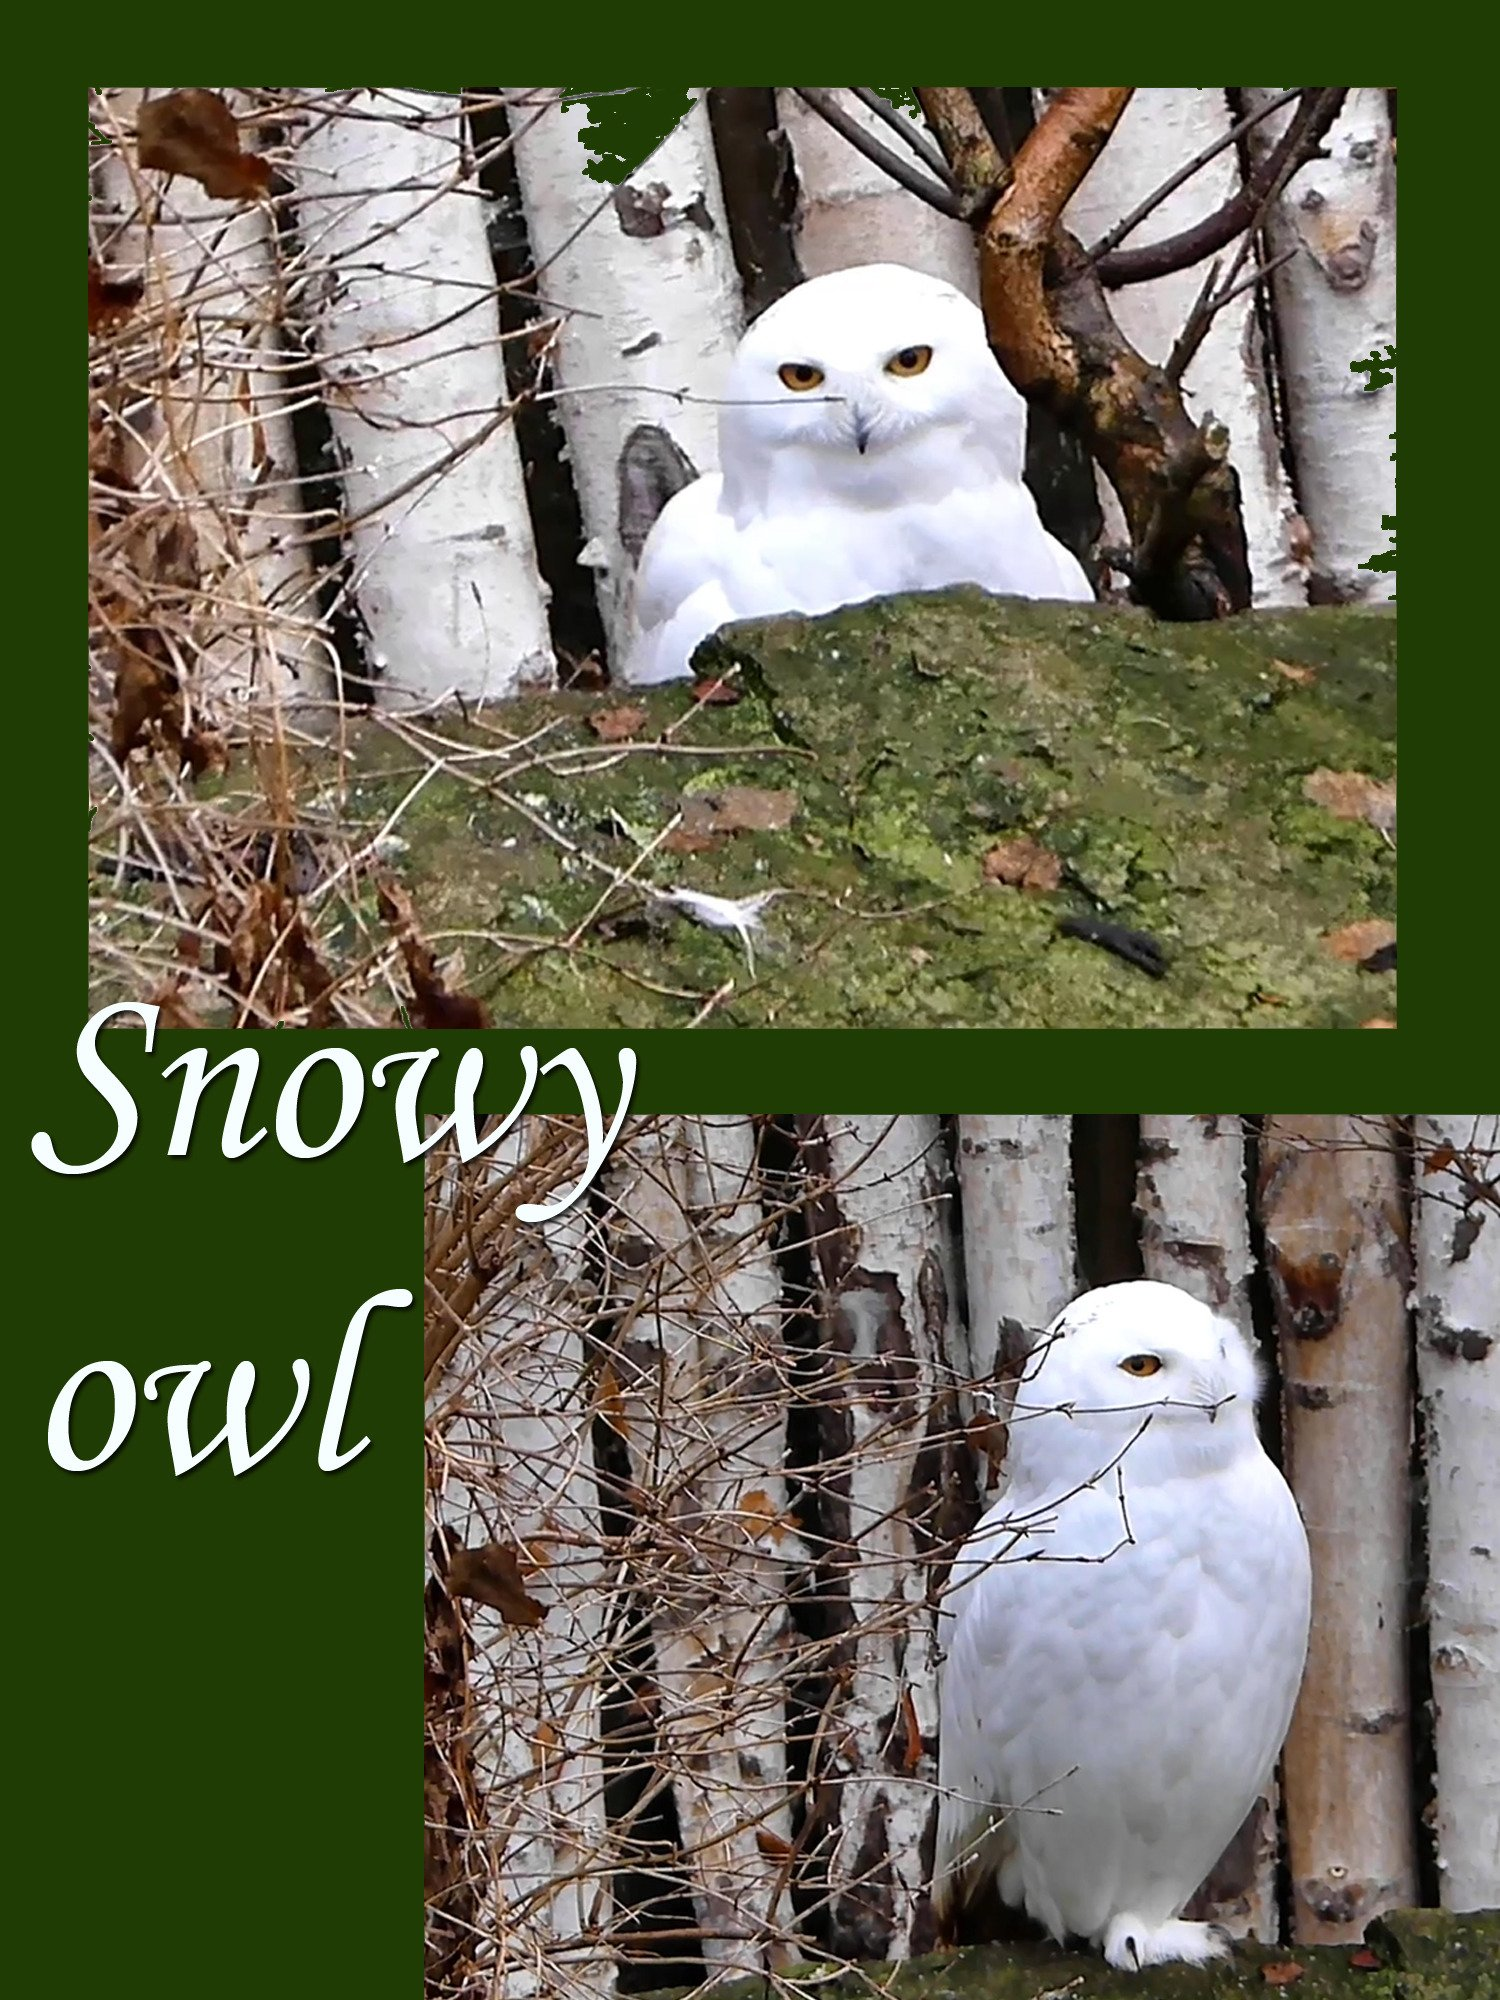 Snowy owl on Amazon Prime Instant Video UK